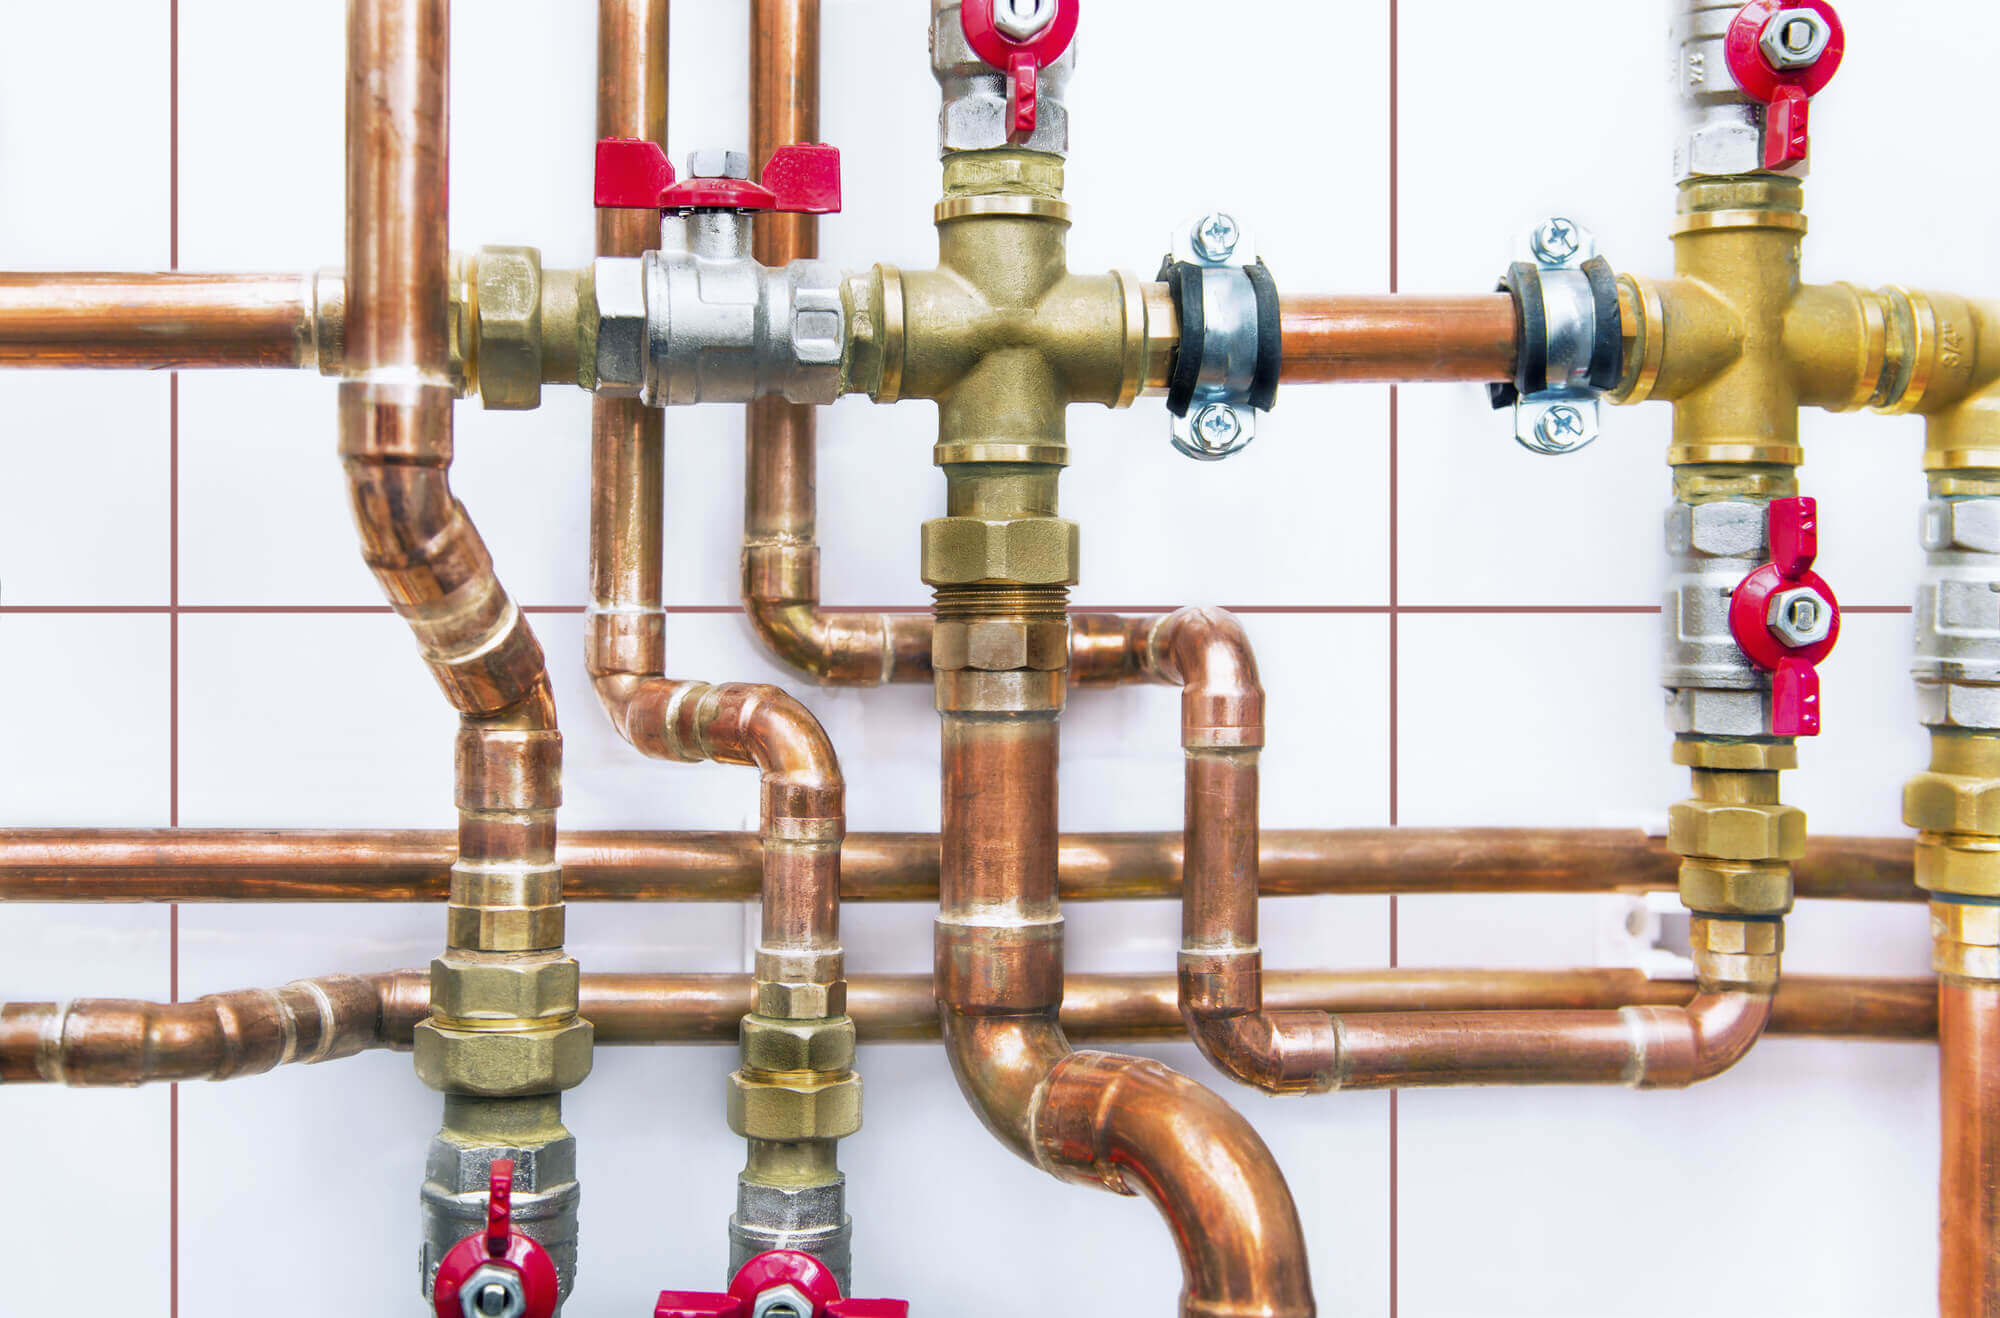 beautifully arranged copper piping